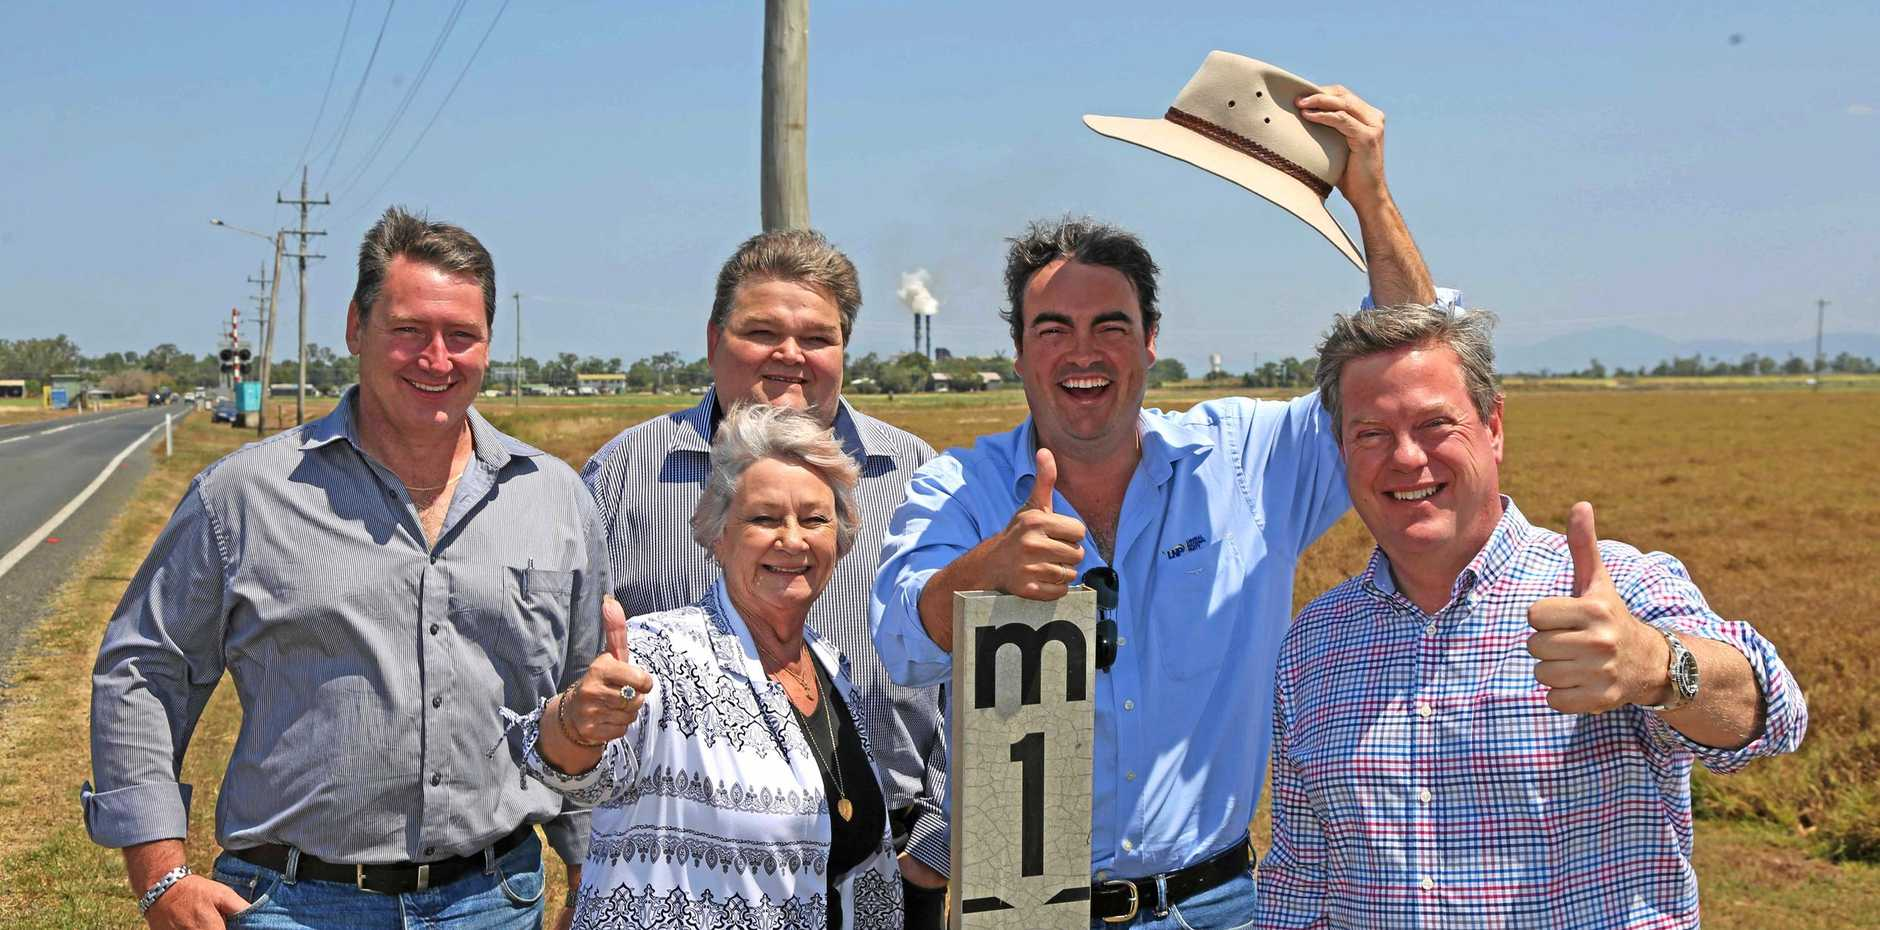 Whitsunday Regional councillors, Ron Petterson, Jan Clifford and deputy mayor John Collins with member for Whitsunday Jason Costigan and Opposition leader Tim Nicholls celebrate a LNP promise to flood proof Hamilton Plains.